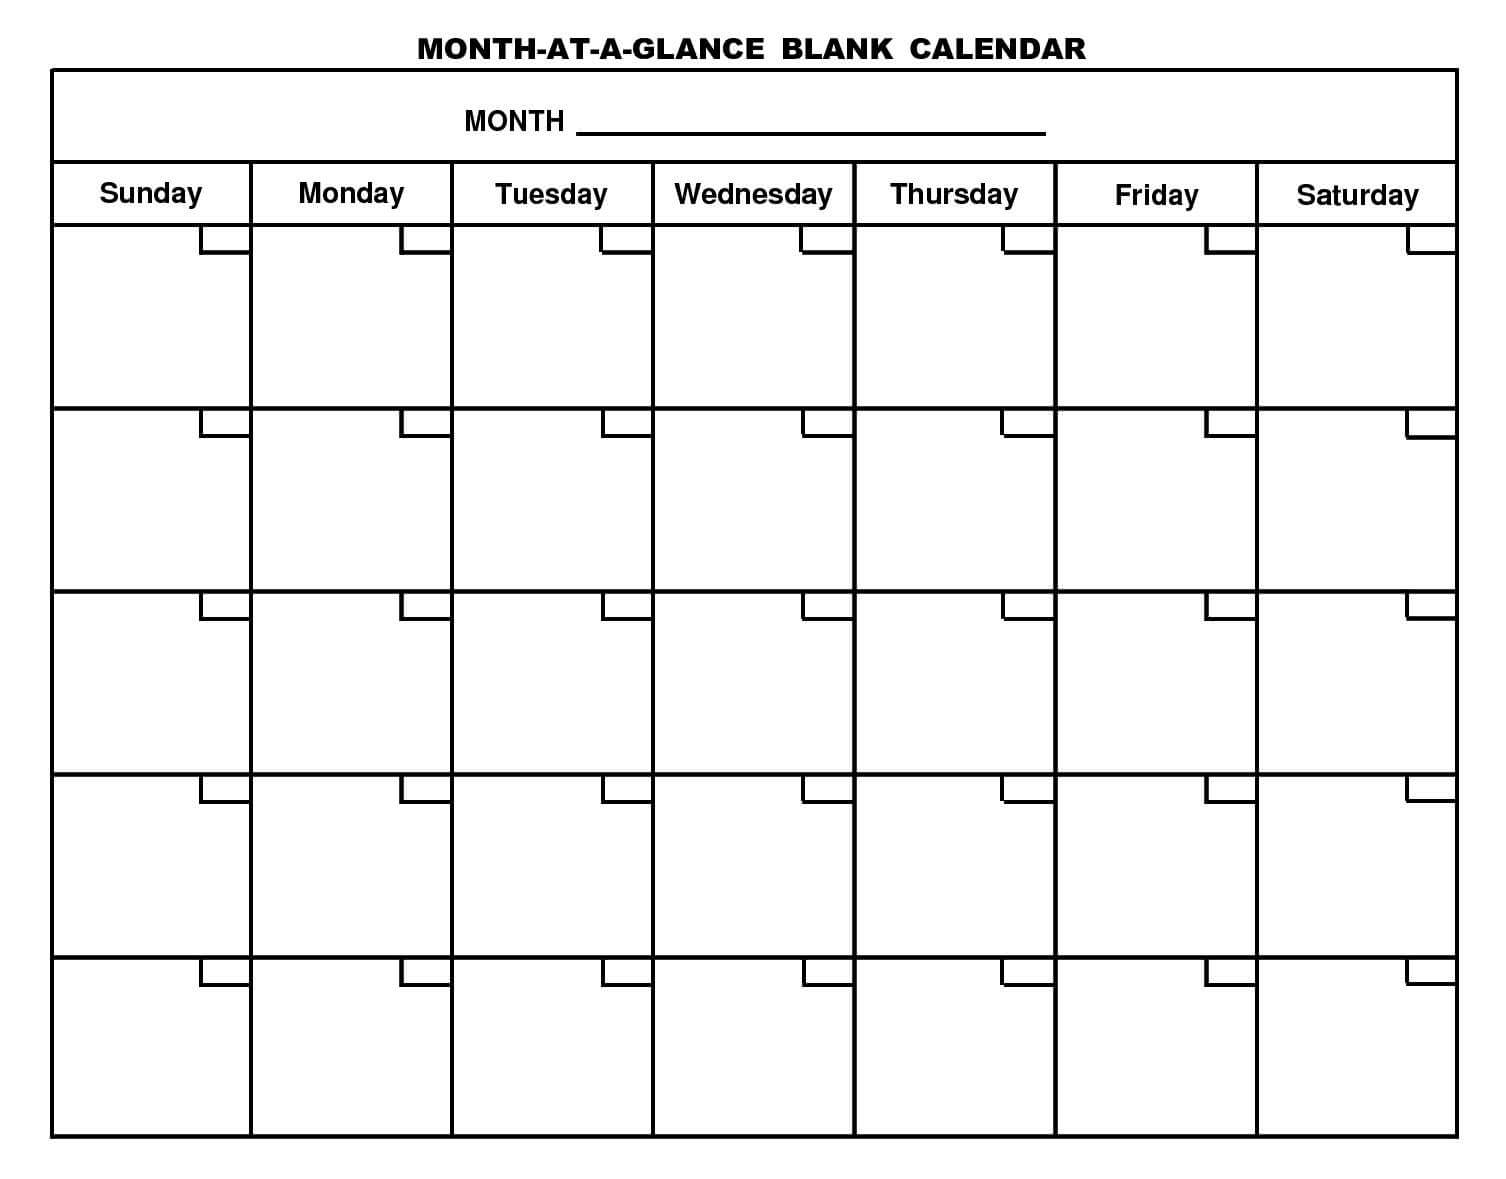 Pinstacy Tangren On Work | Printable Blank Calendar With Regard To Month At A Glance Blank Calendar Template